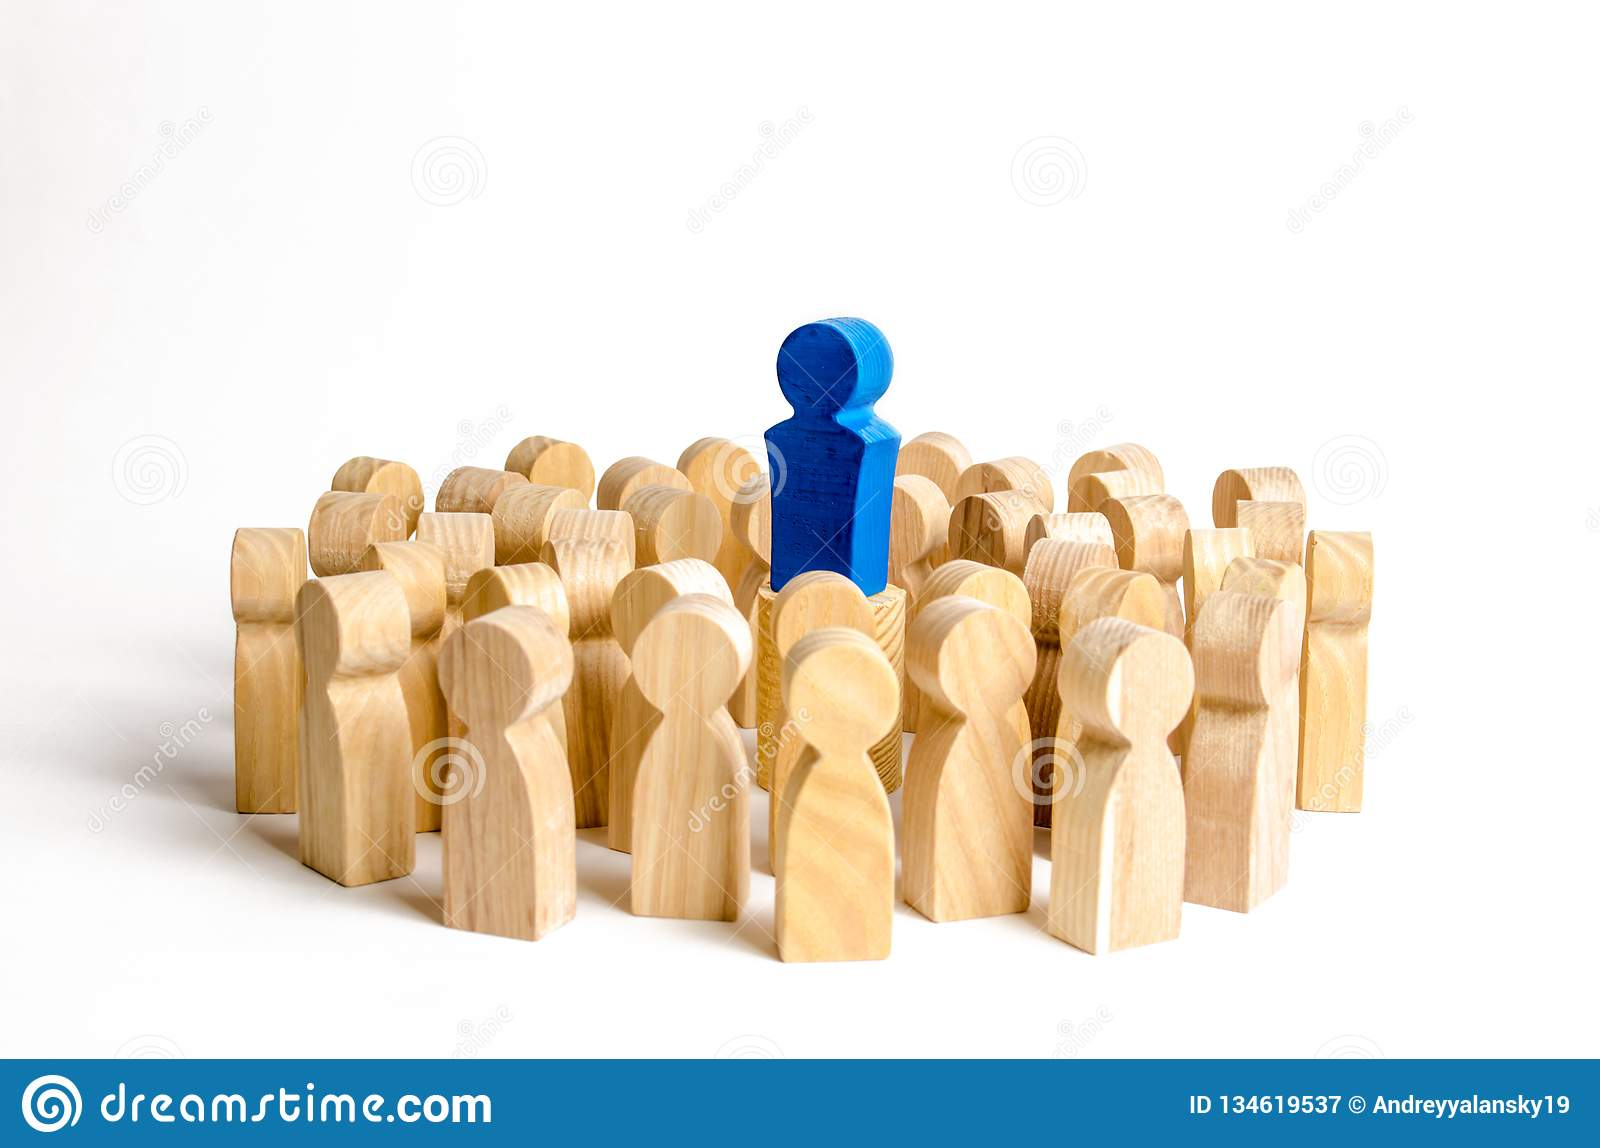 The leader stands at the head of the crowd. Business concept of leader and leadership qualities, Business concept of leader